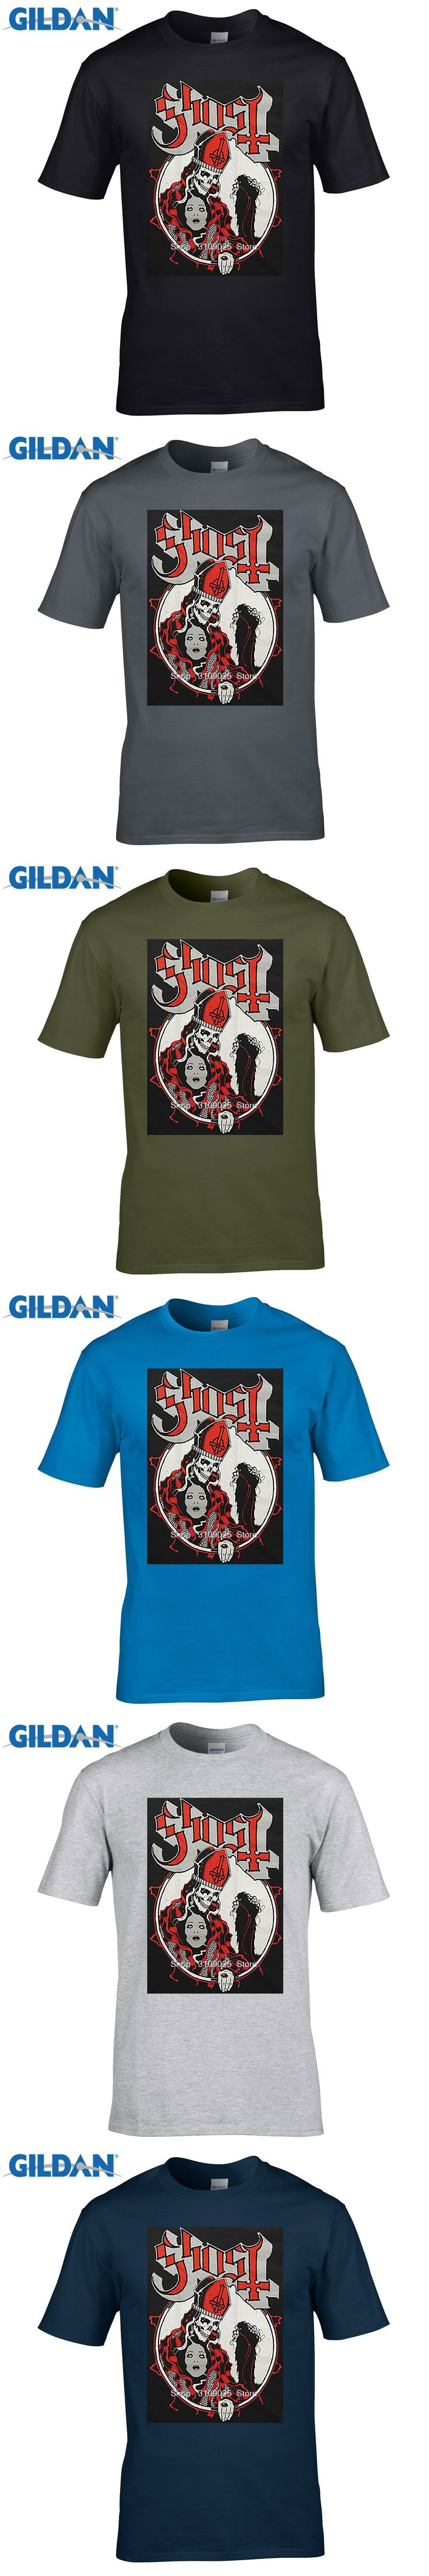 GILDAN  Promotion Fashion O-neck Broadcloth Cotton Print Tee Graphic Shirts Short Men Comfort Soft Ghost Bc Shirt